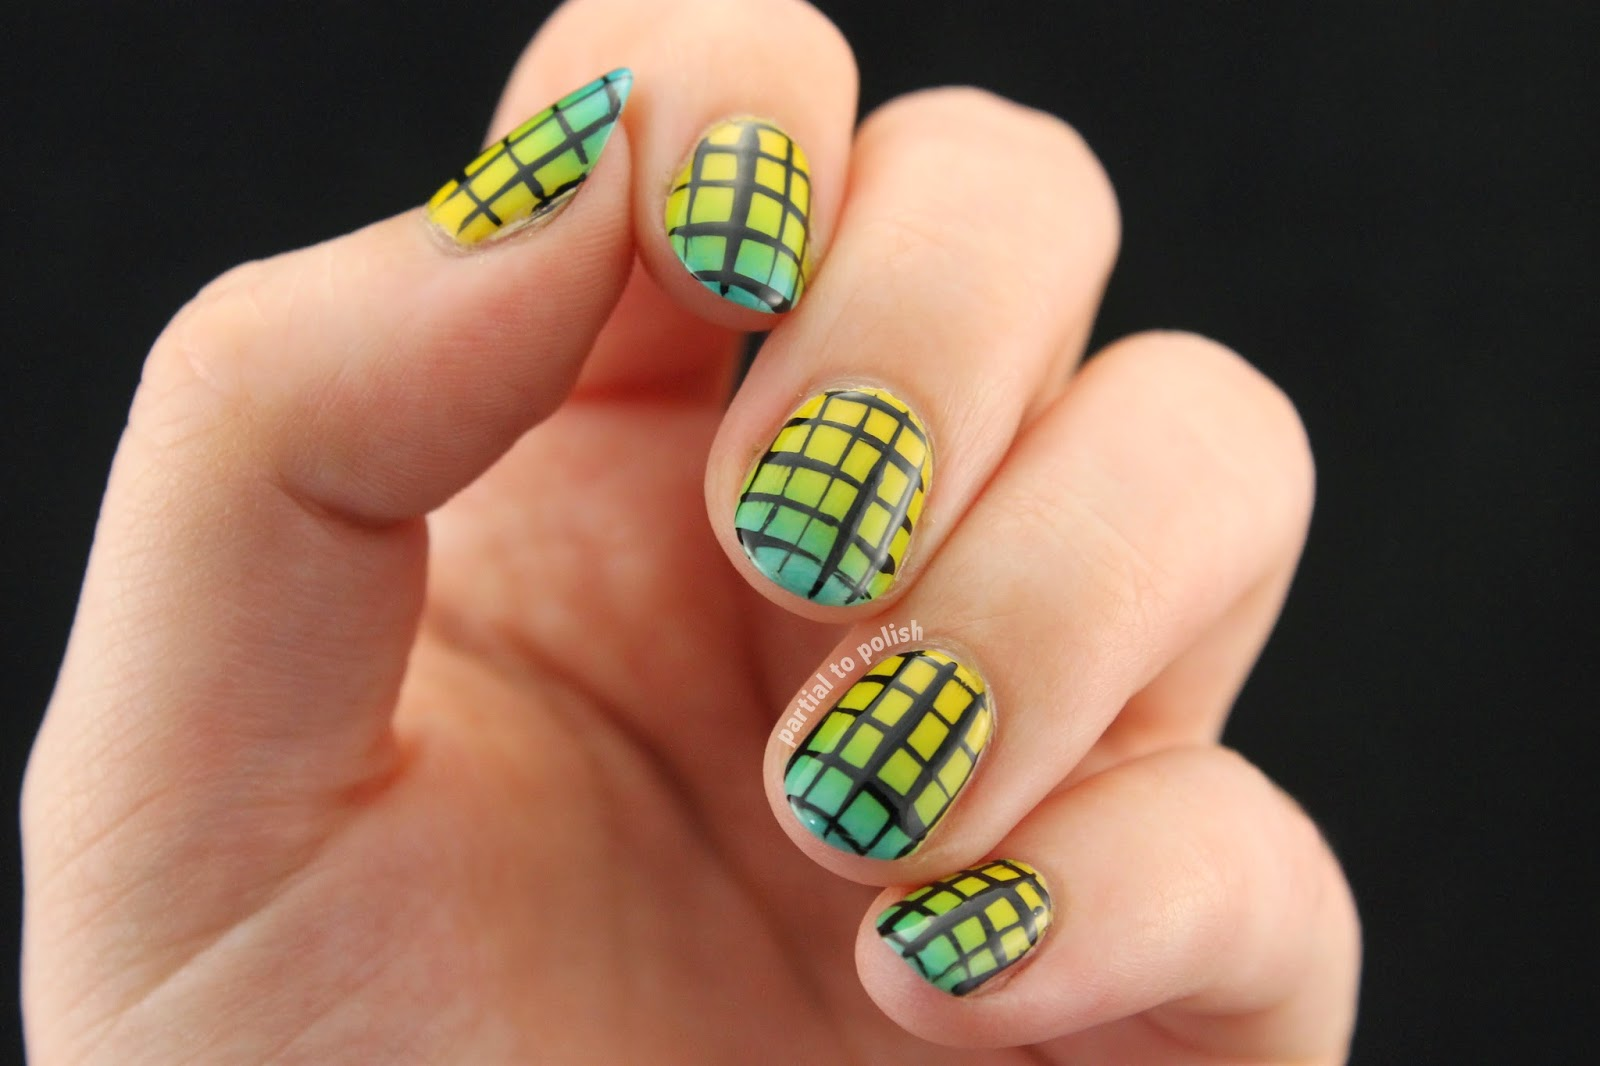 Yellow to Blue Gradient Topped with a Grid Design Featuring American Apparel Polishes